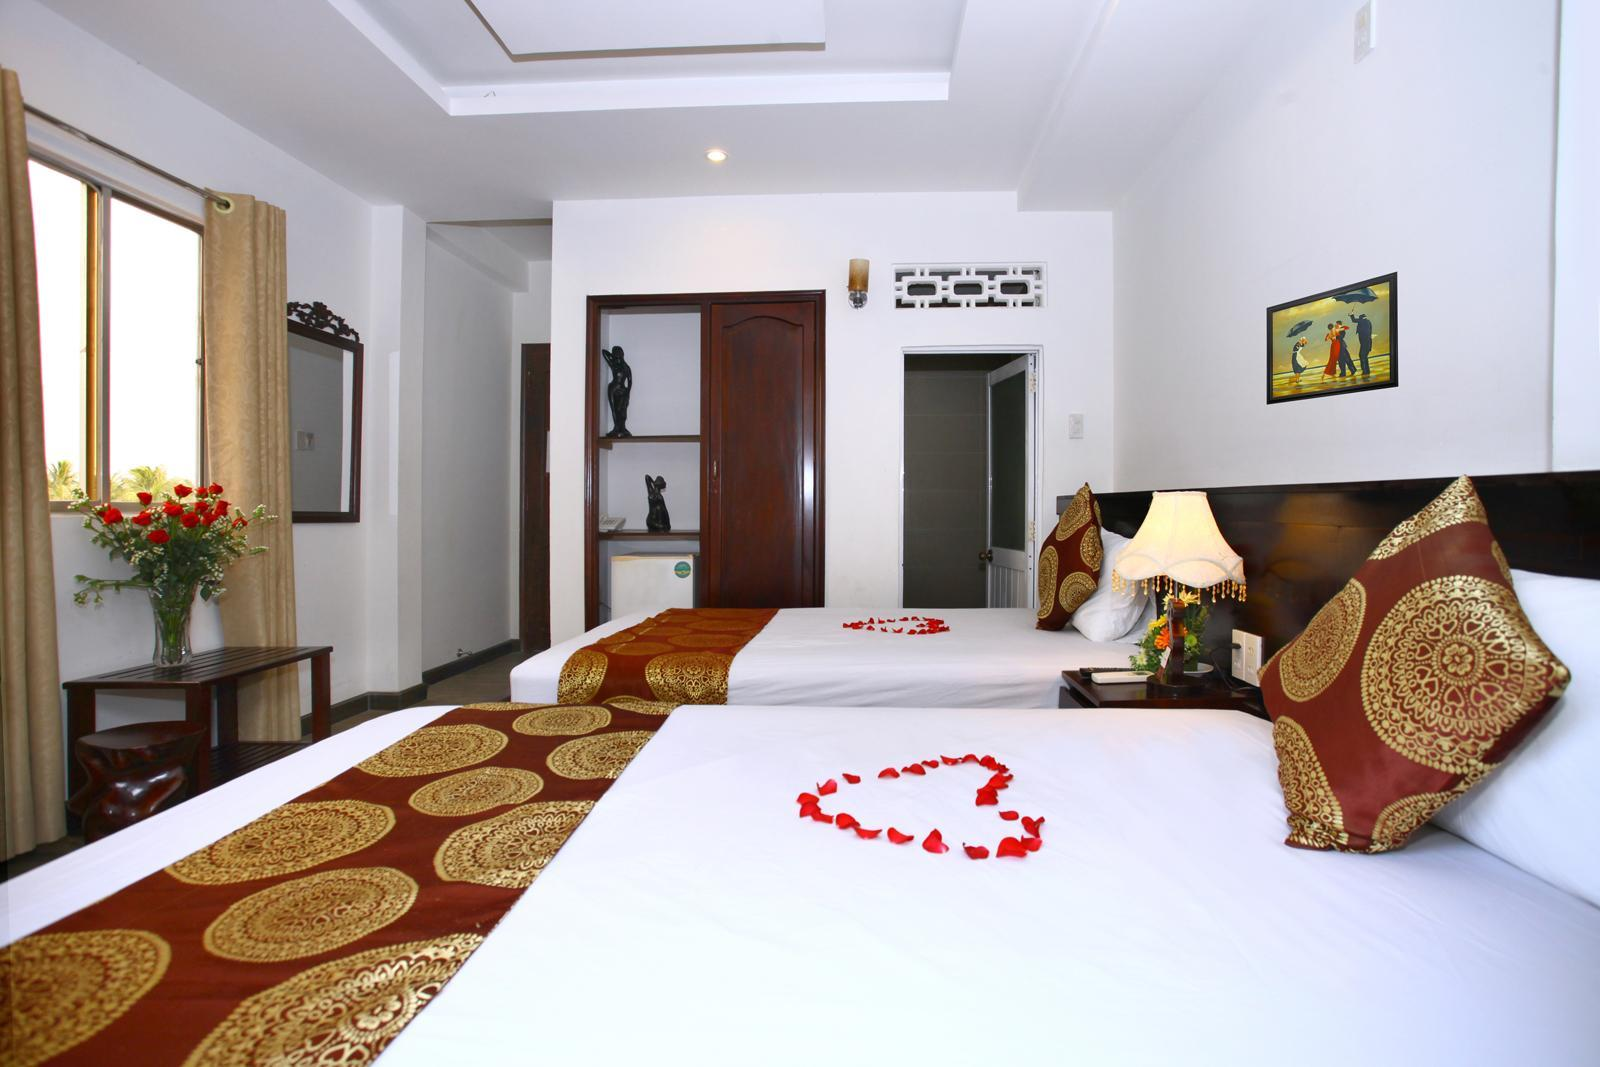 Deluxe Twin Room with Balcony and City View